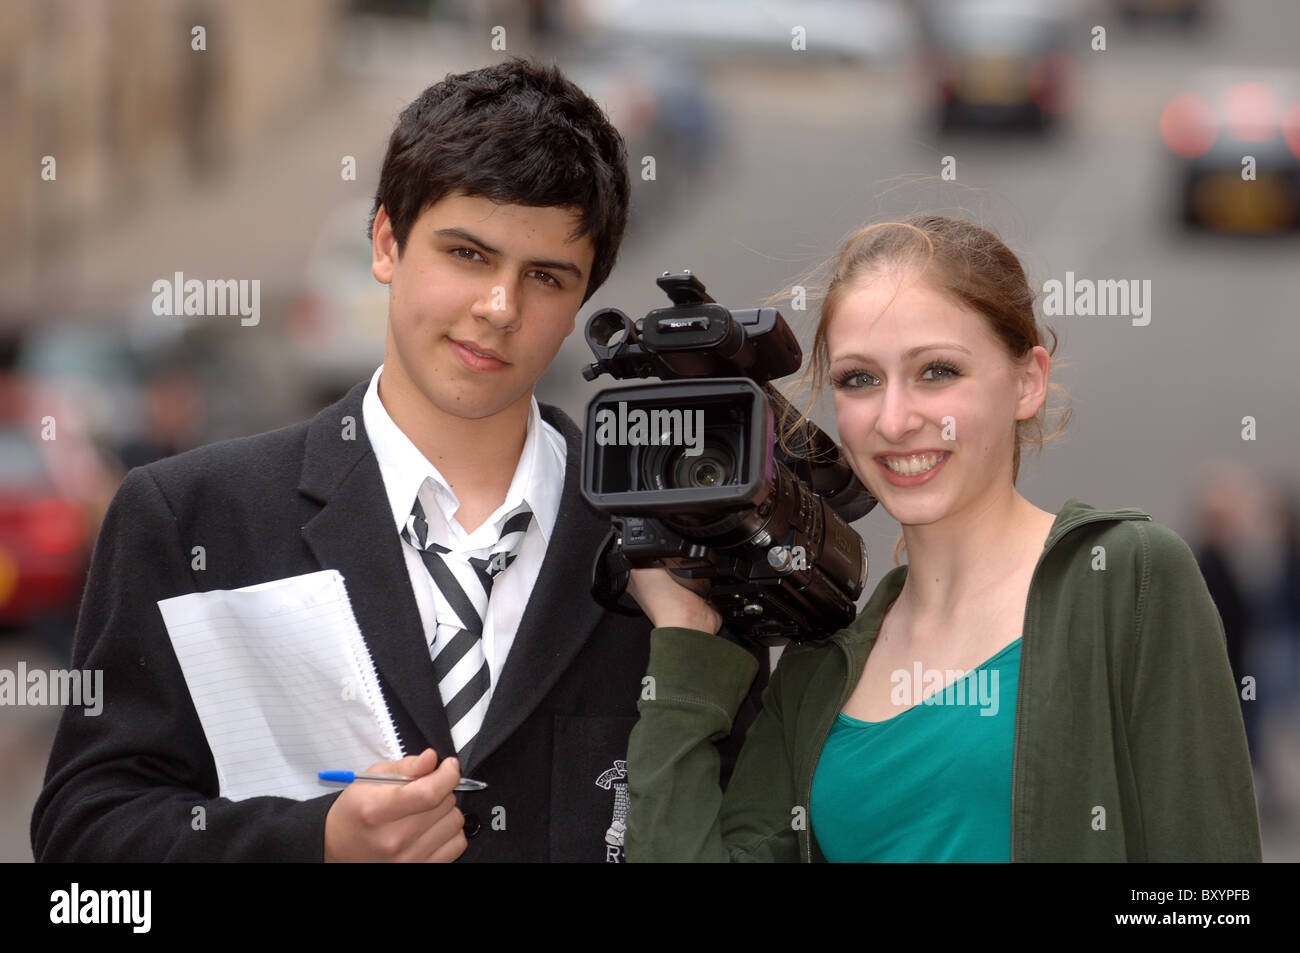 Young film makers on location - Stock Image